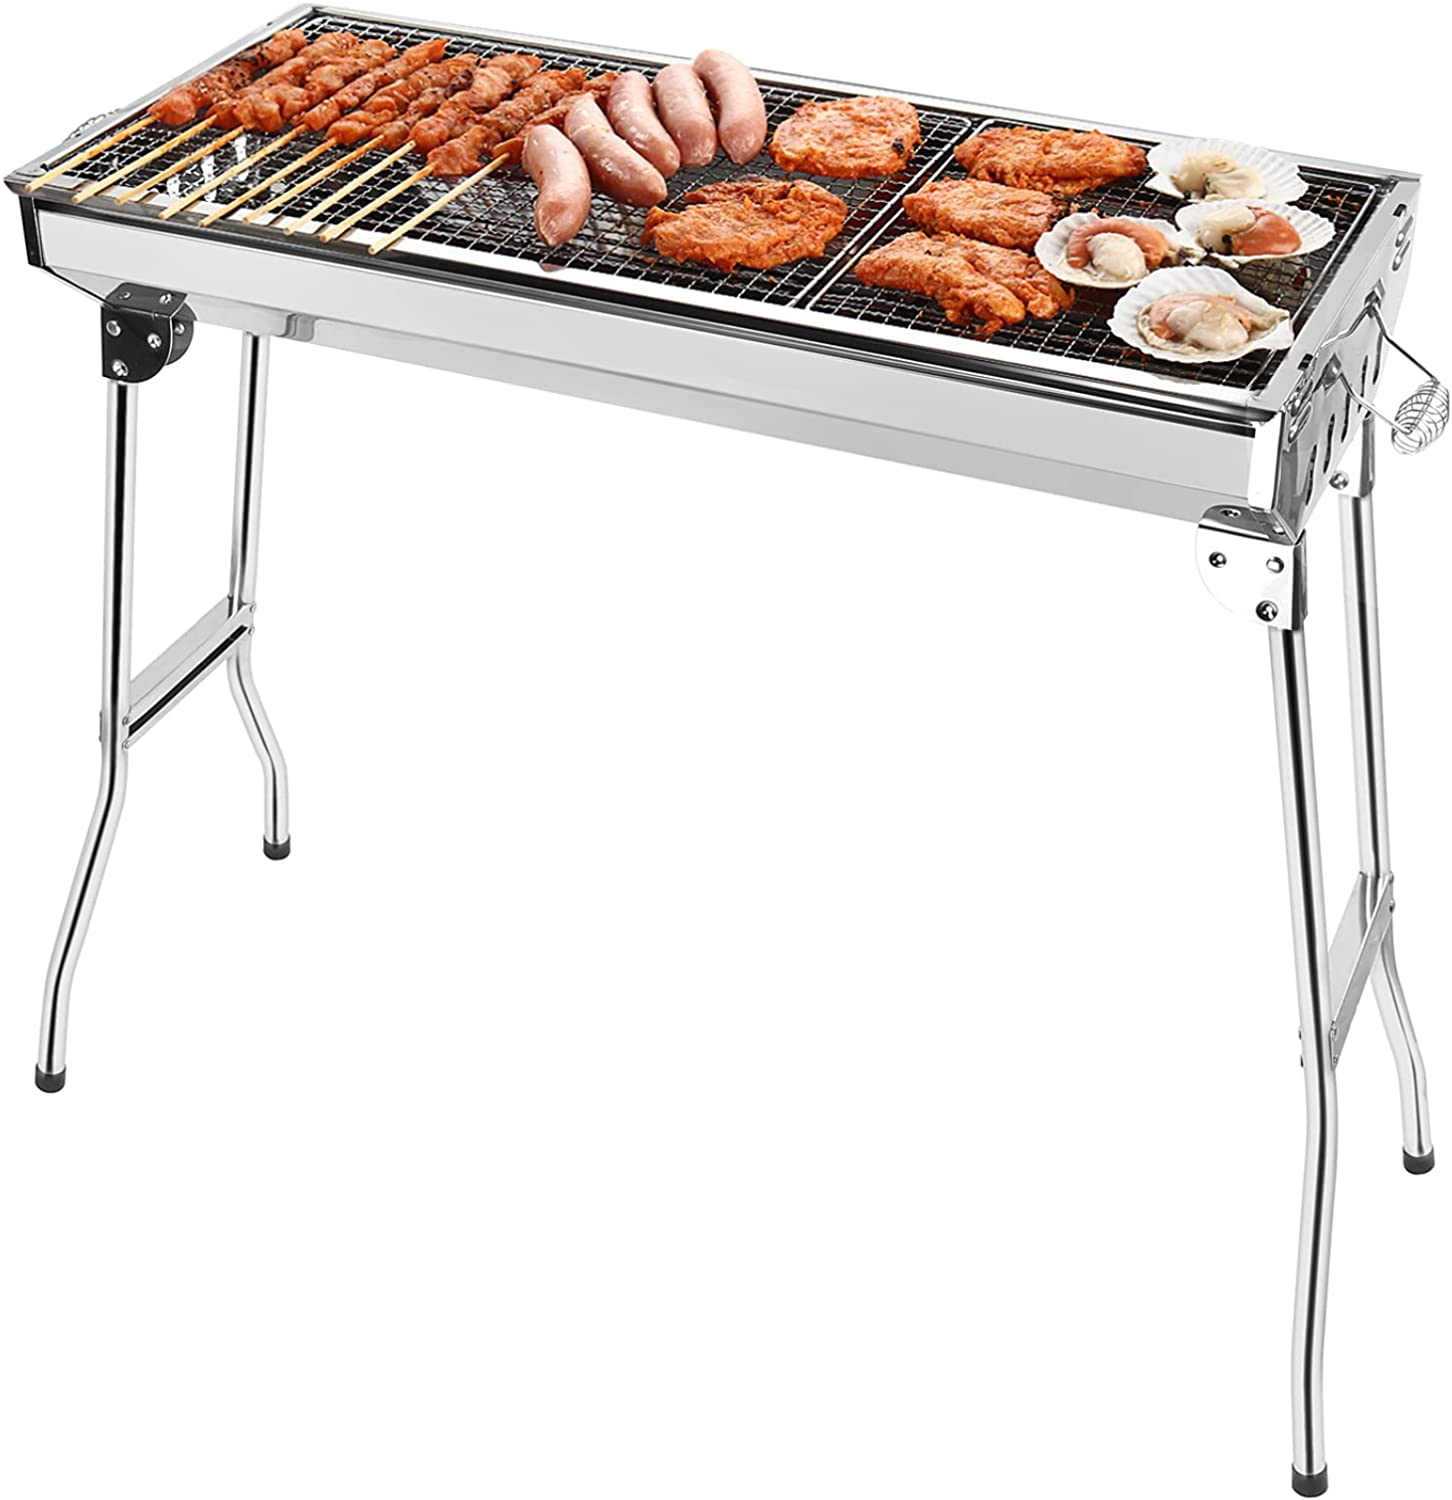 Charcoal Grills Portable BBQ - 返品送料無料 Stainless Steel Campi Folding 最新